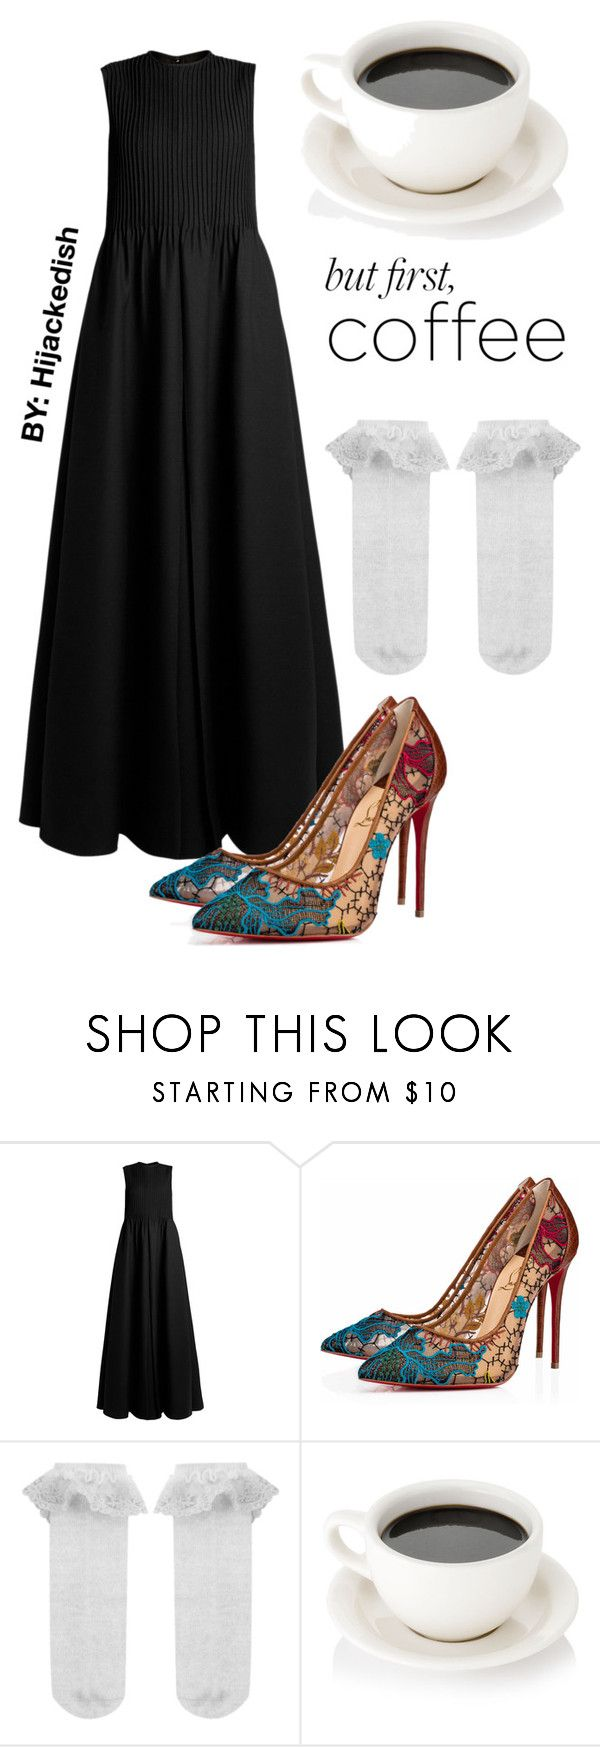 """""""but first, coffee"""" by hijackedish on Polyvore featuring Valentino, Christian Louboutin and Monsoon"""